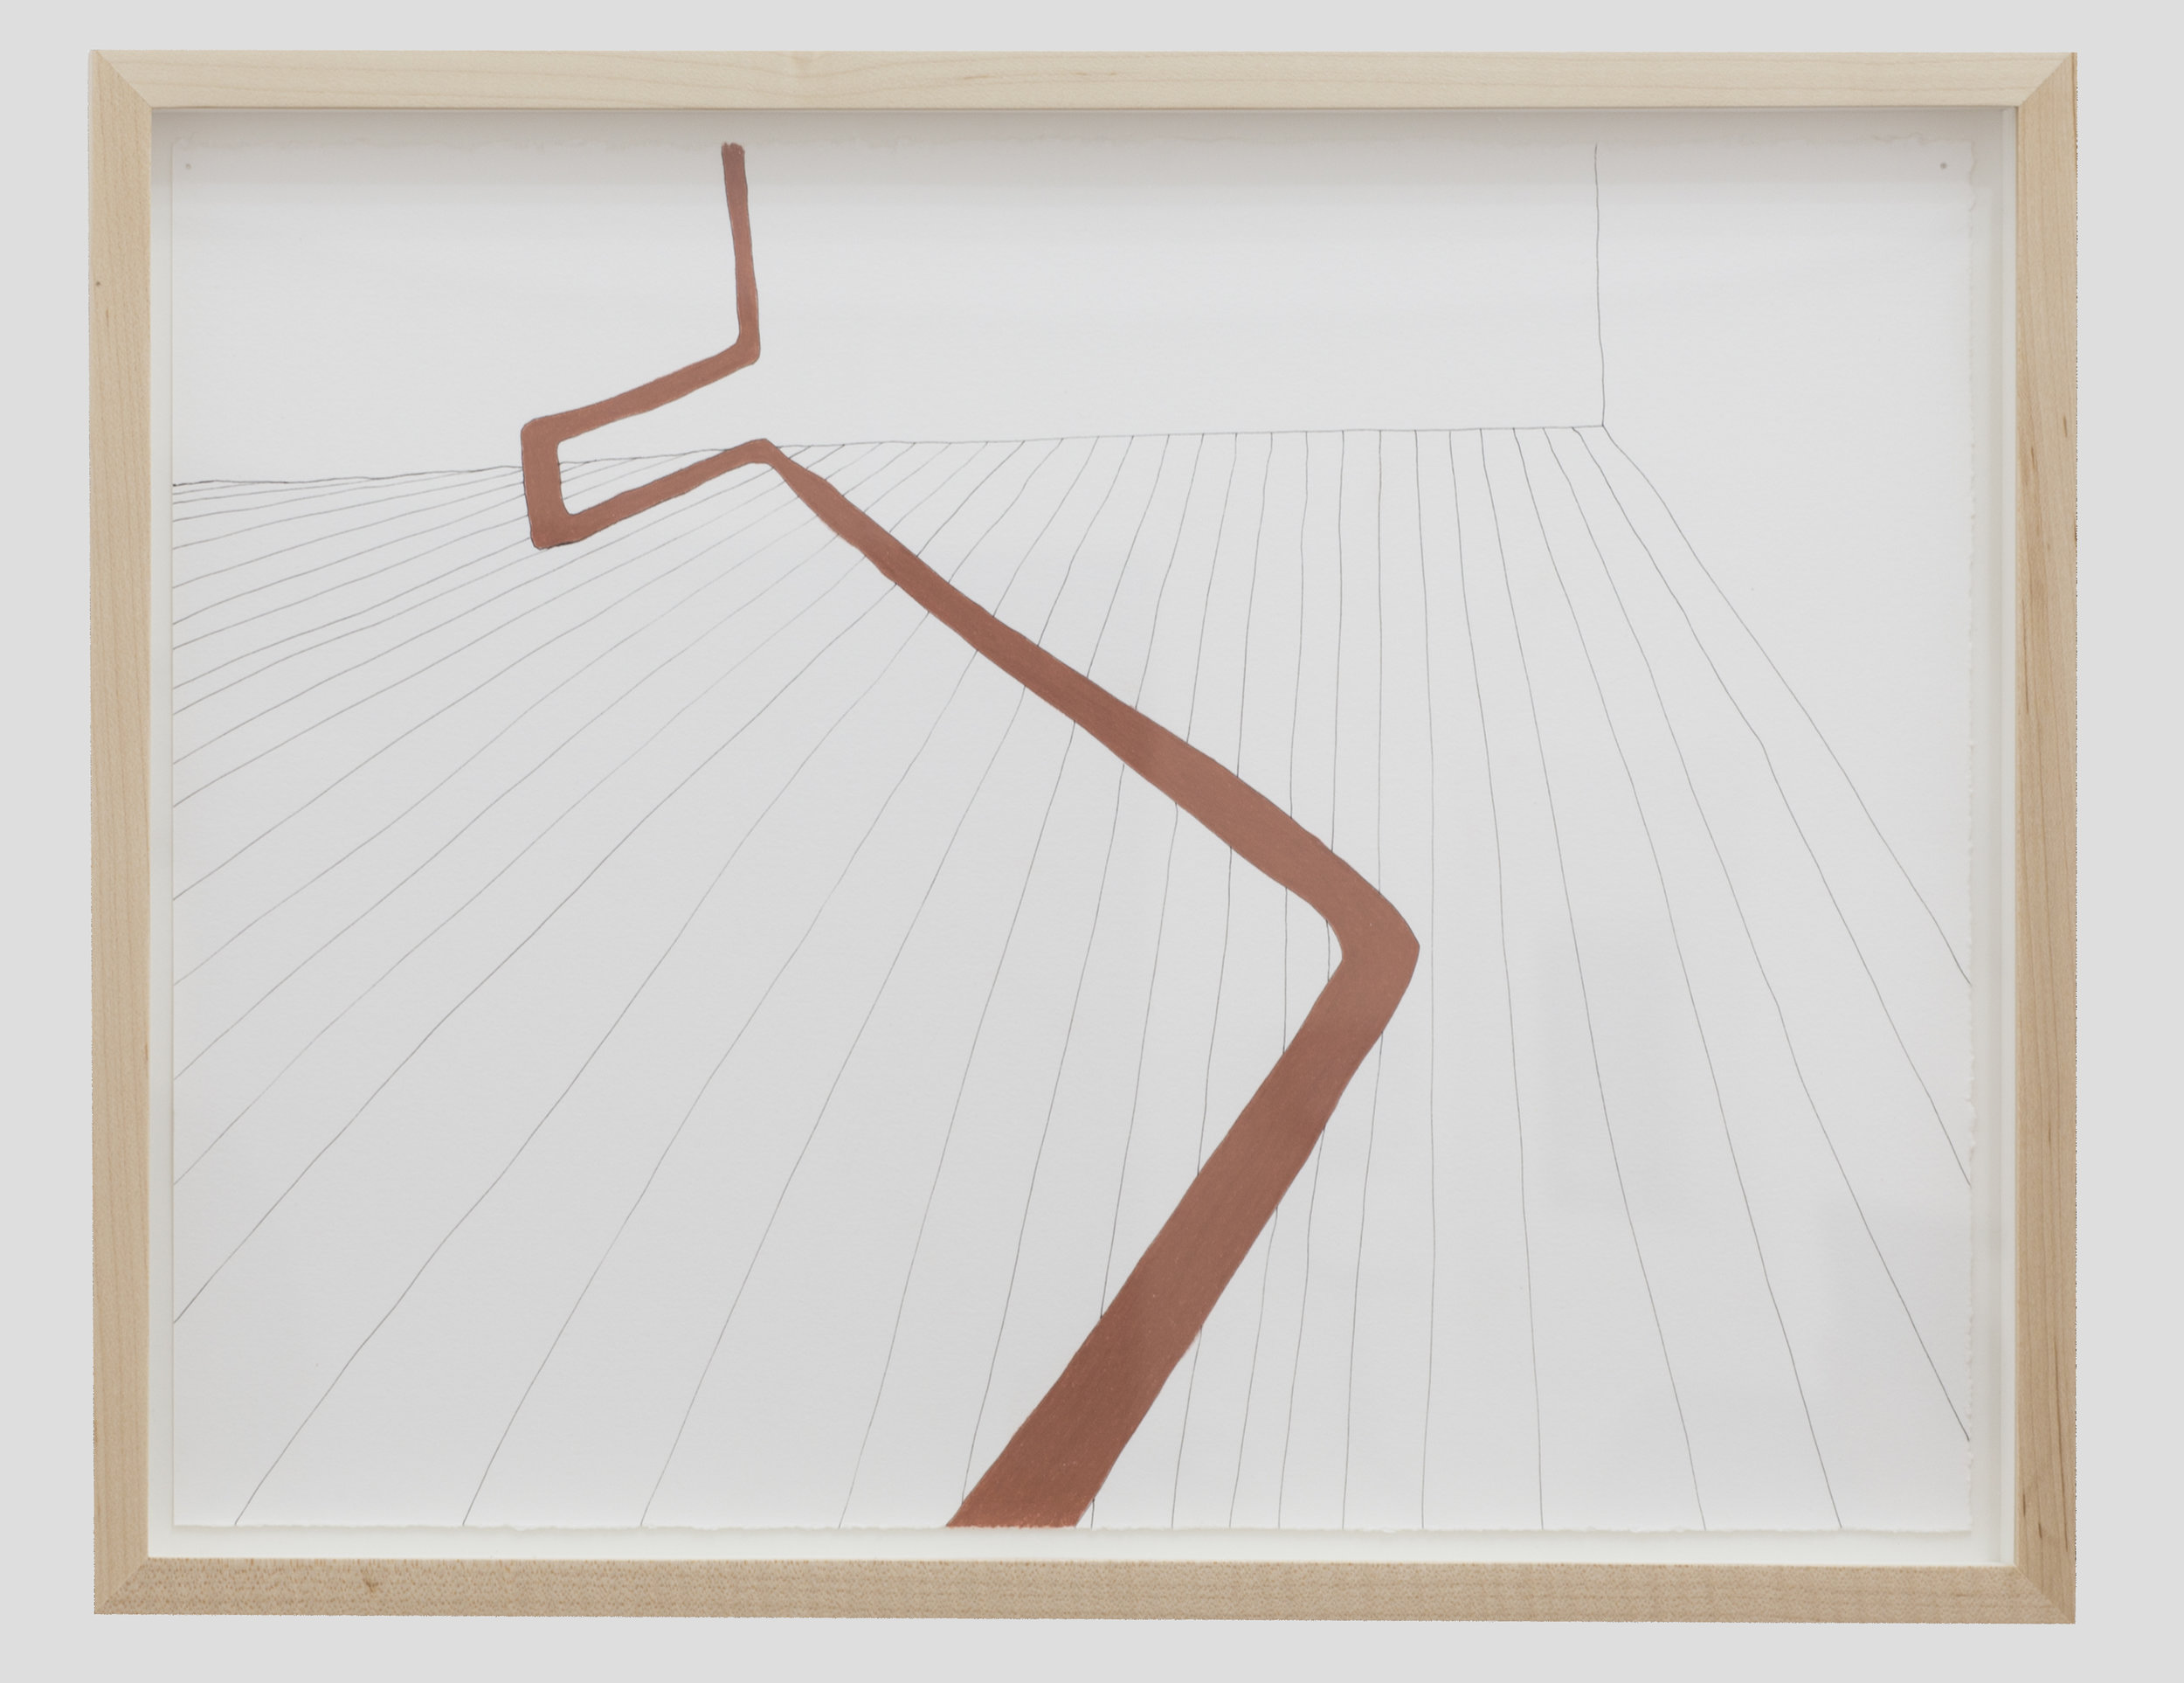 Gabriela Salazar,  Notional Navigational Handrail , 2016. Ink and conté pencil on paper. Courtesy Efrain Lopez Gallery.